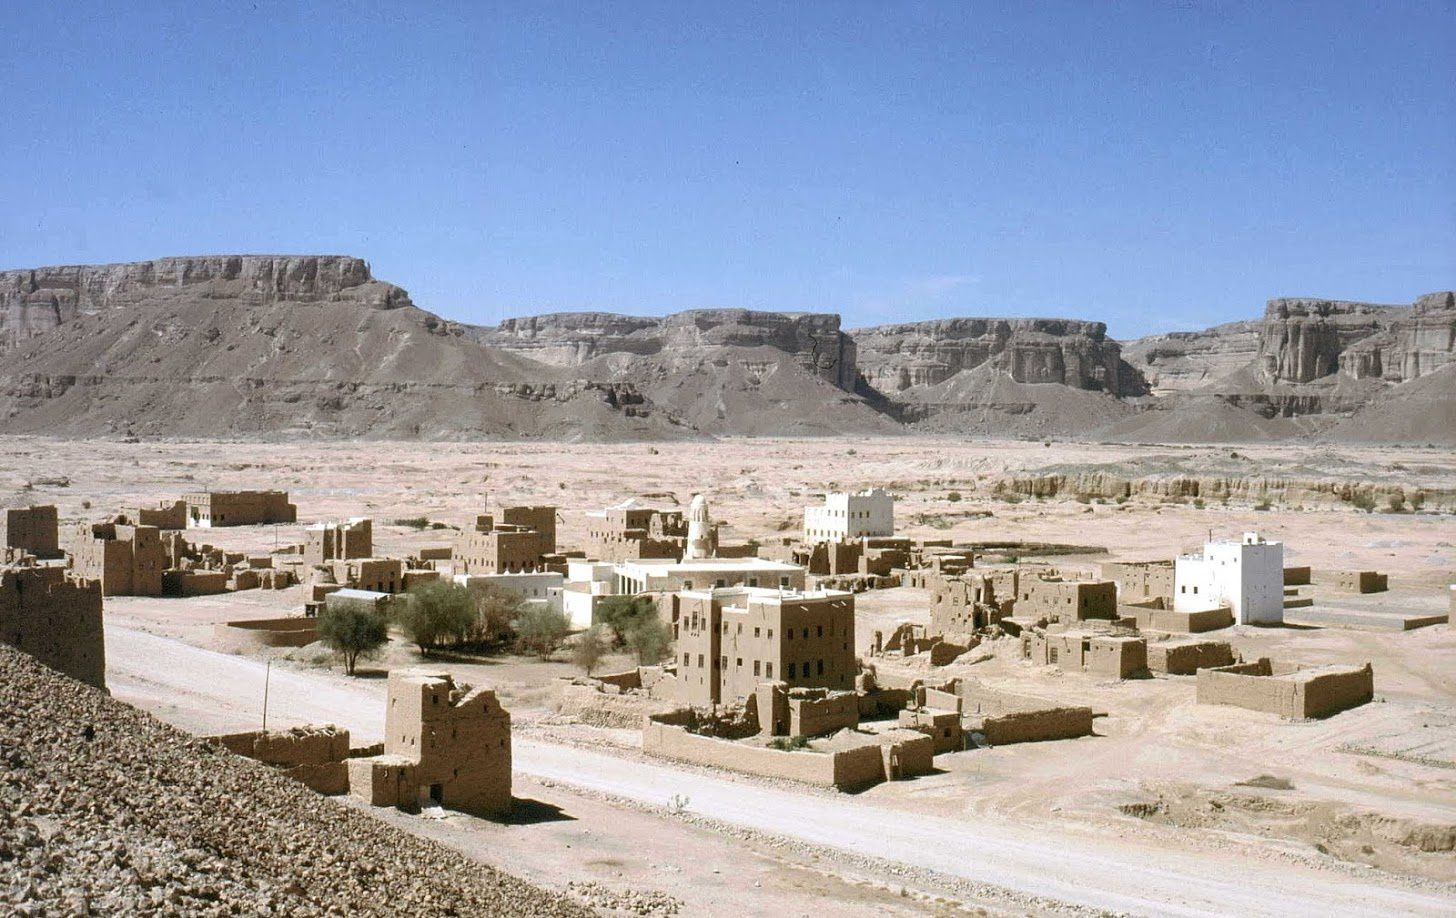 Al Masshad - Wadi Do'an